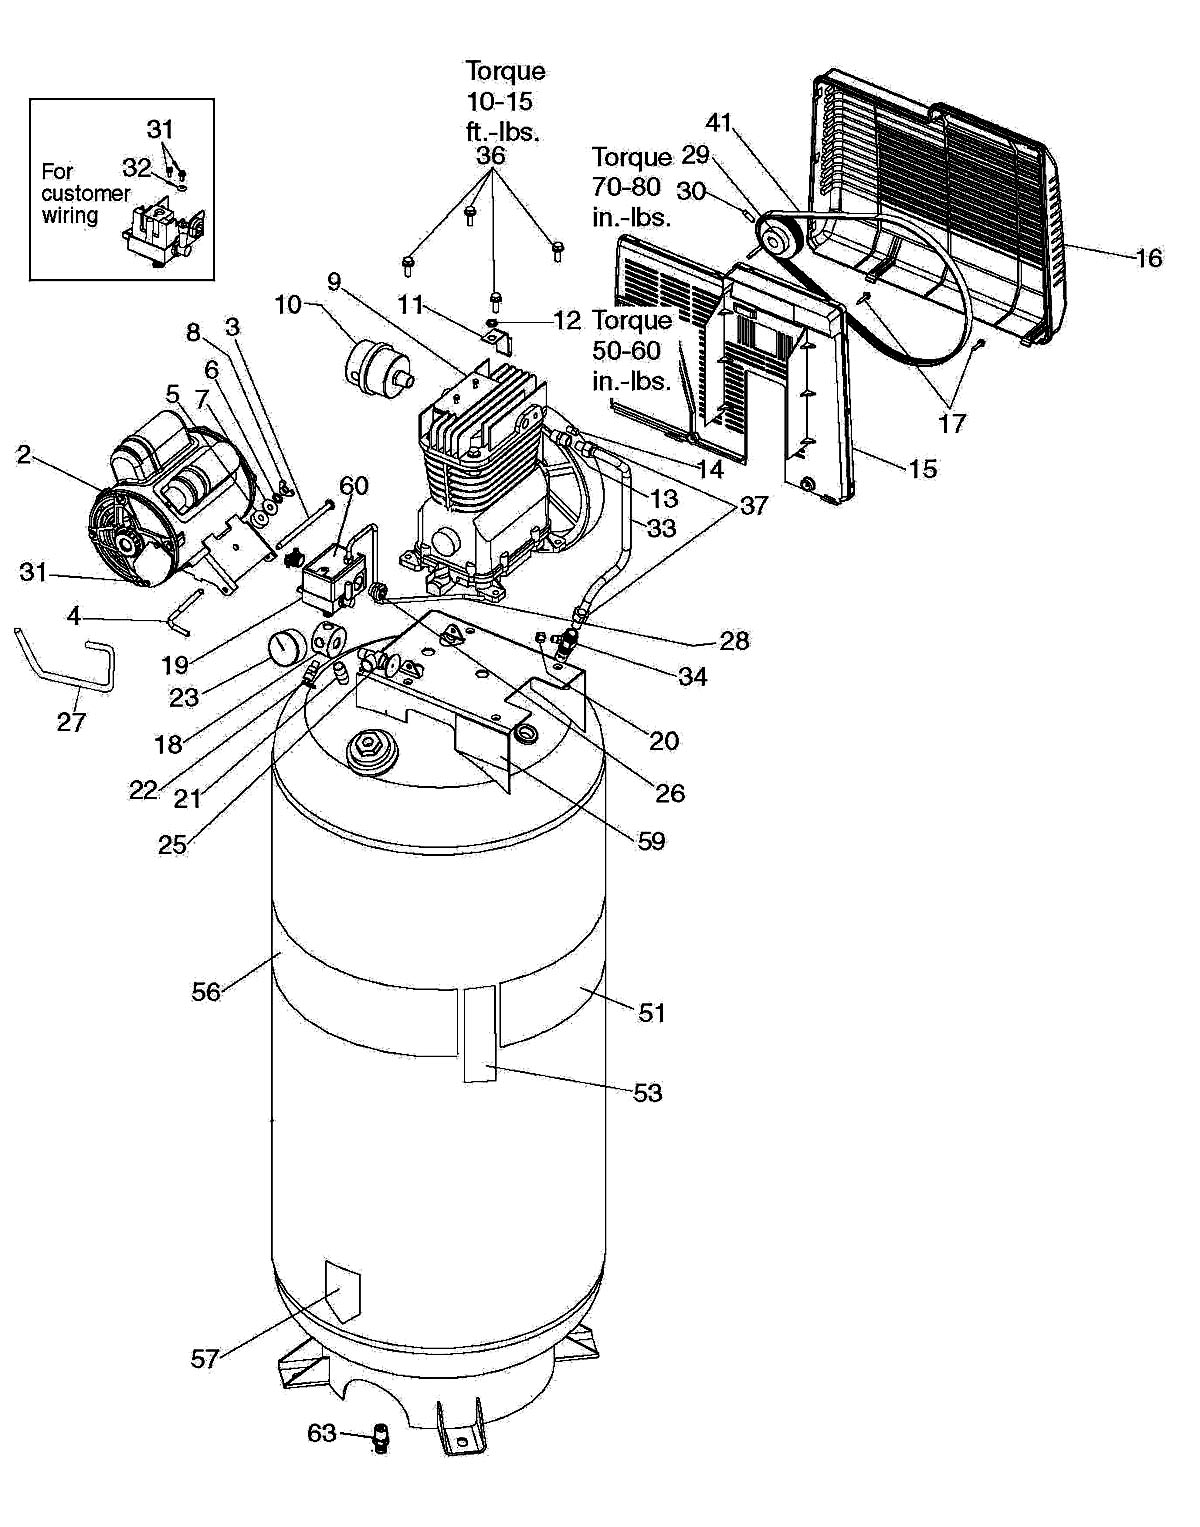 Wiring Diagram For Craftsman Air Compressor : 43 Wiring